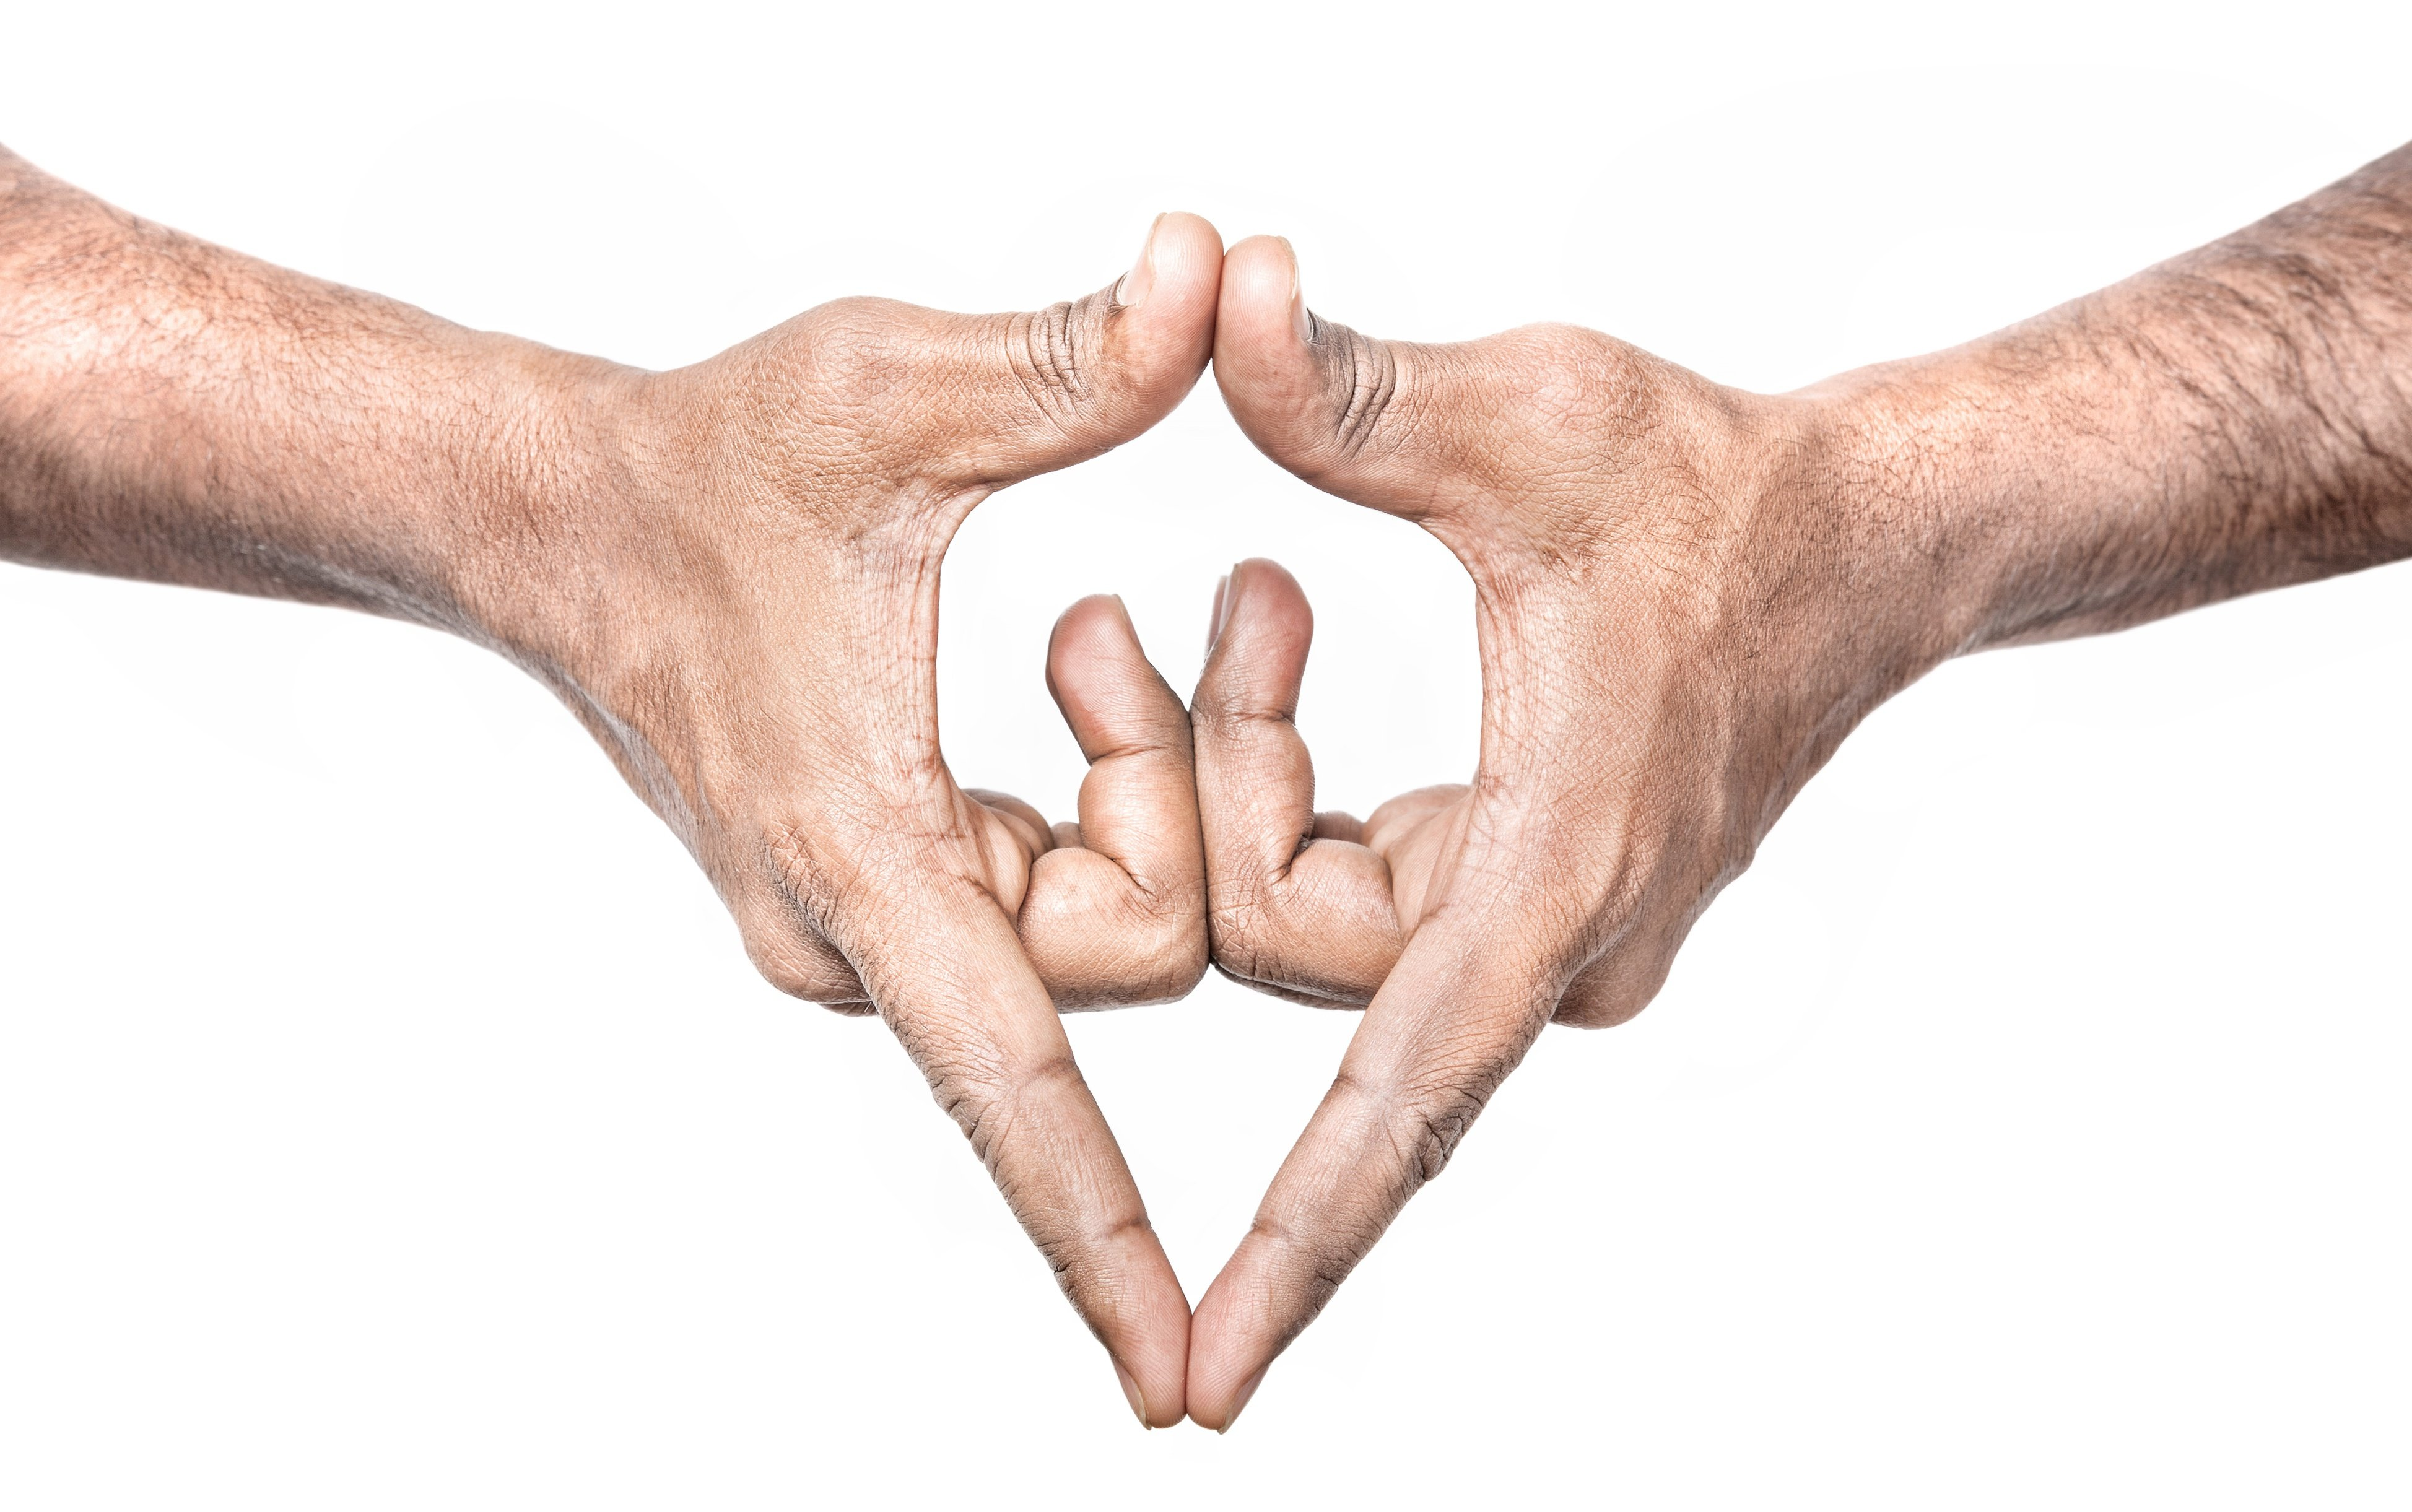 This is the hand gesture used in Yoga to represent a woman's vulva.